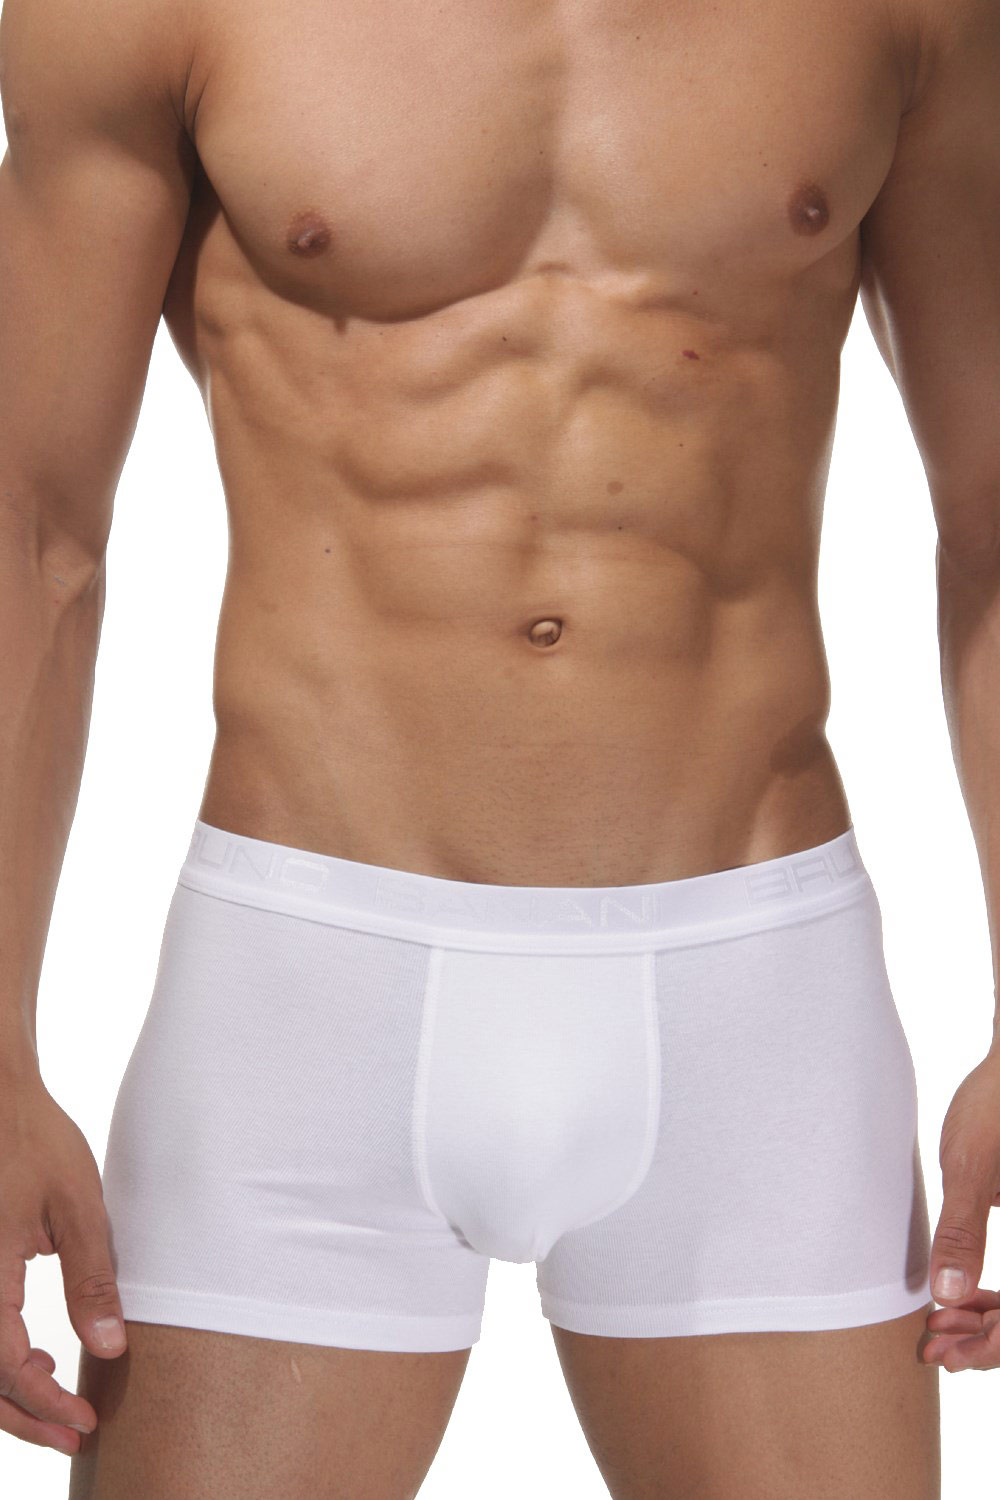 BRUNO BANANI PERFECT LINE 1499 Short auf oboy.de